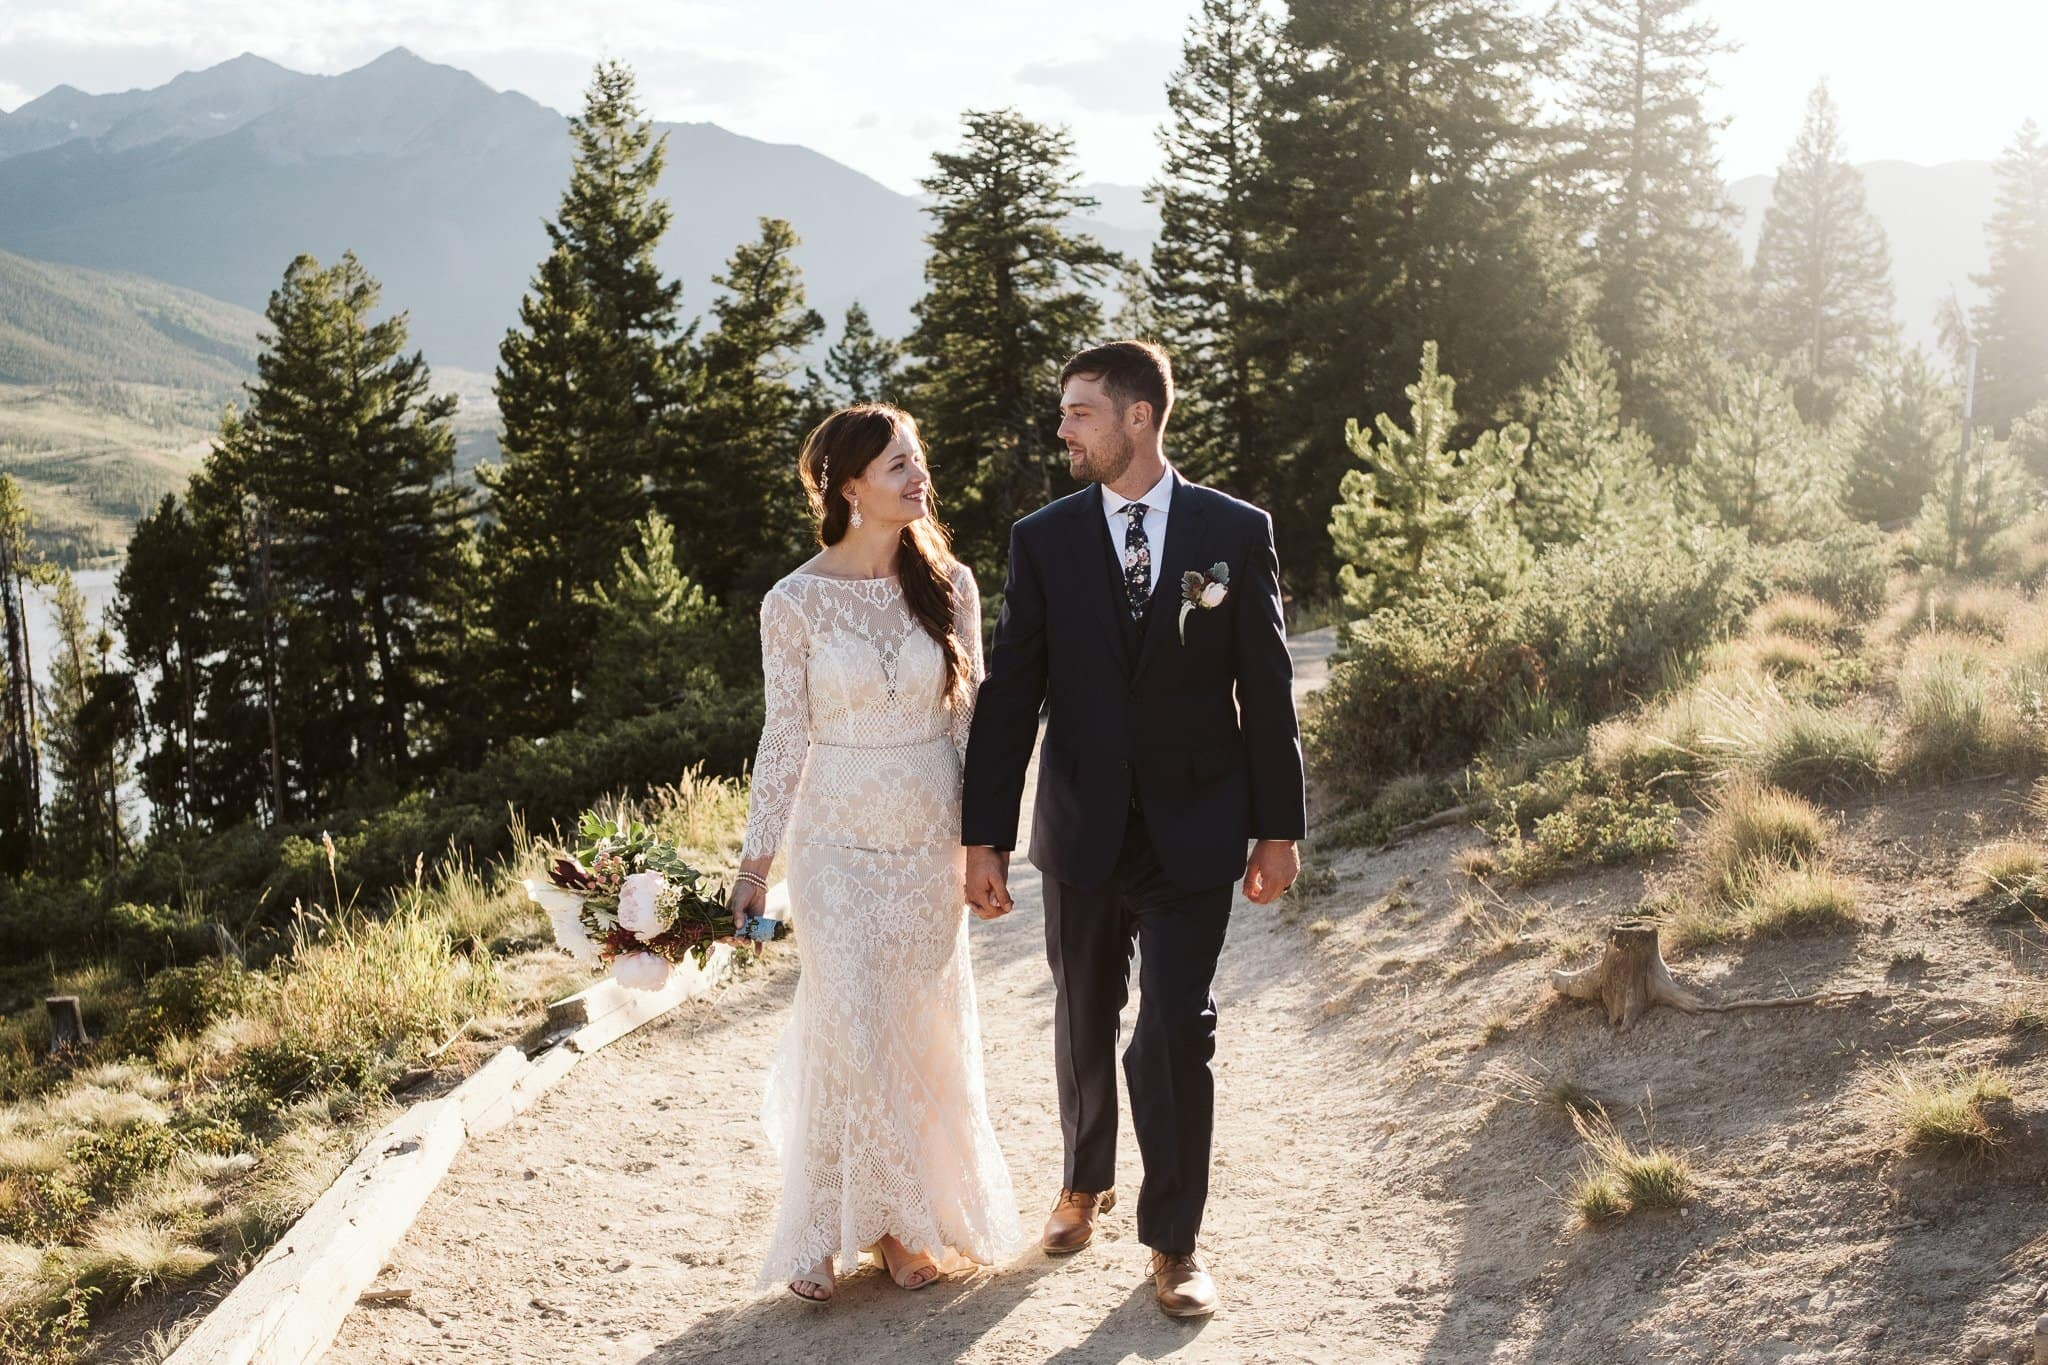 Wedding at Sapphire Point Overlook trail in Summit County